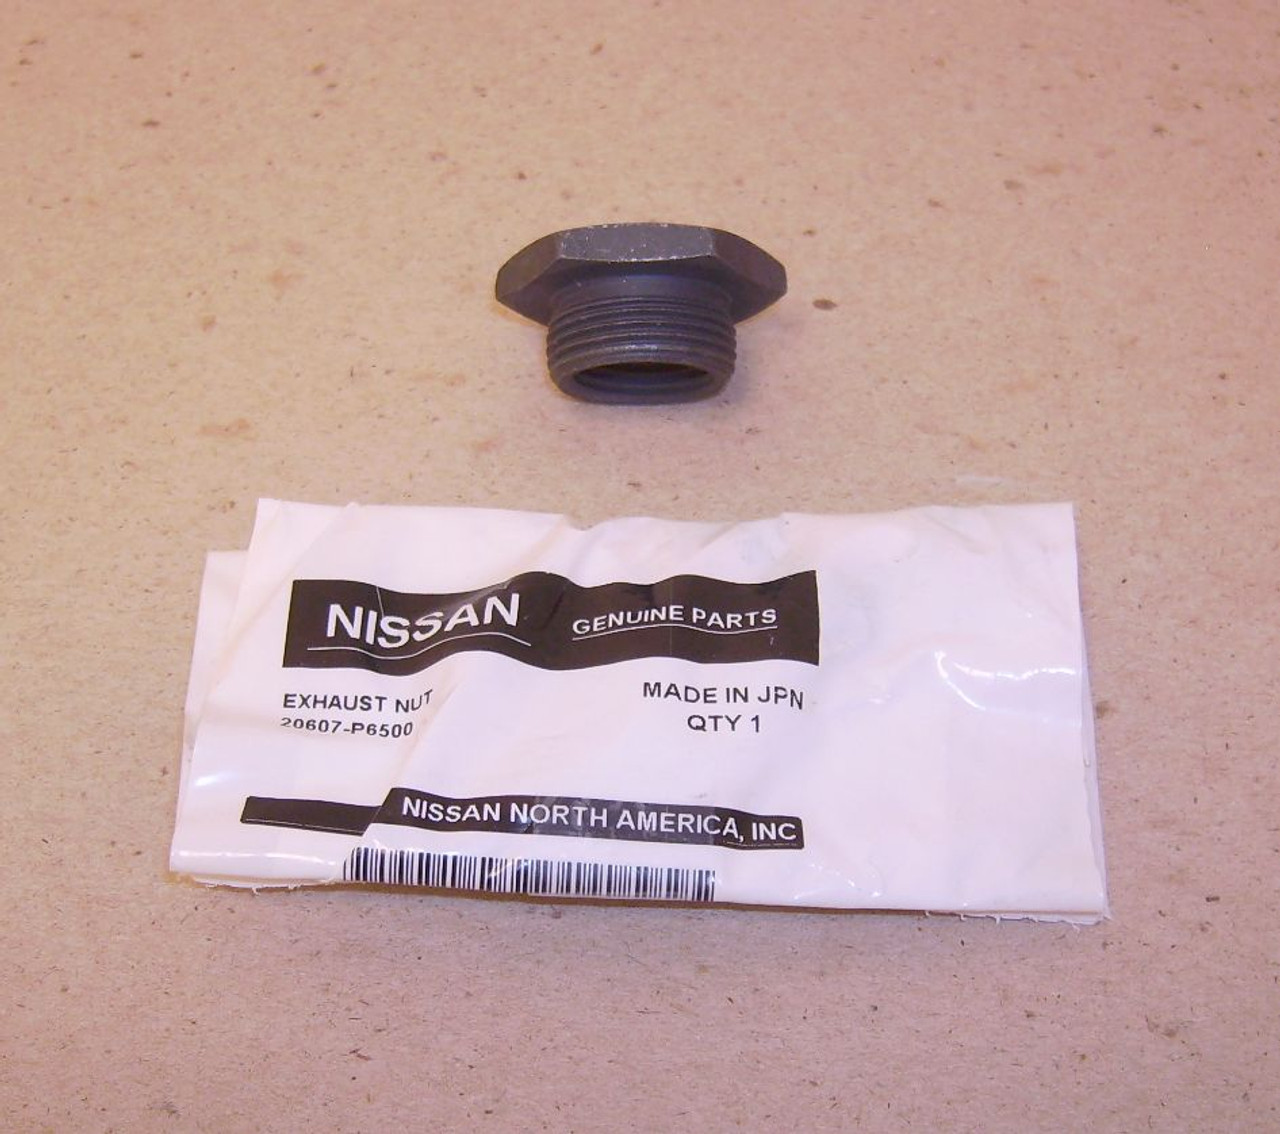 O2 Oxygen Sensor Adapter Bung Fits Datsun & Nissan With The Larger Diameter Sensors With M18 Threads 20607-P6500